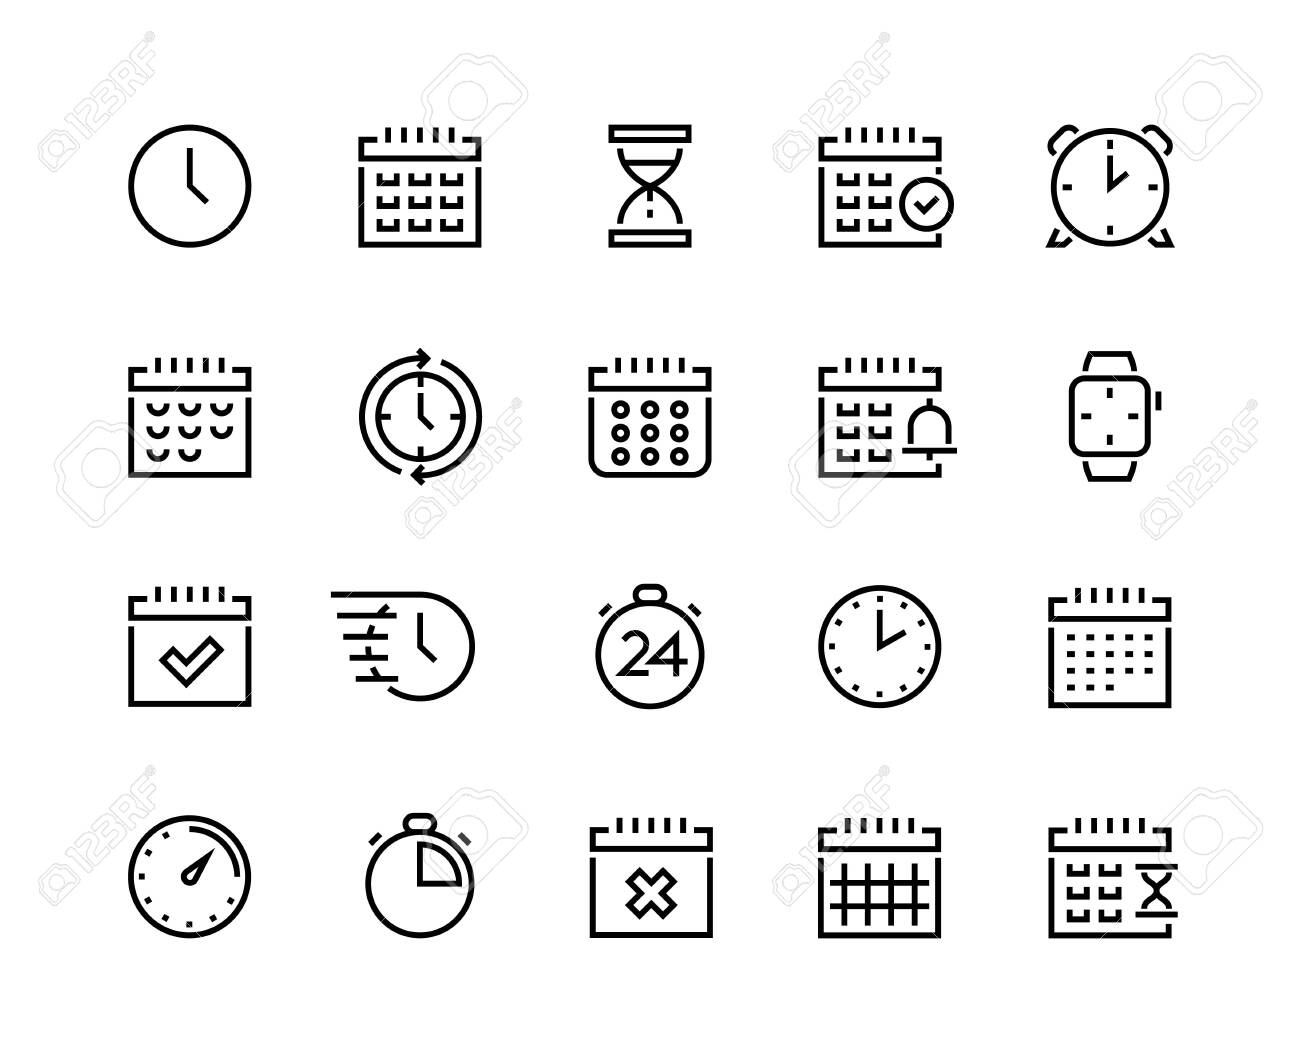 Time and calendar line icons. Business planning and schedule optimization pictograms with clock, alarm, stopwatch and chronometer. Vector set simple icon symbols timekeeper, sign time relativity - 143933656